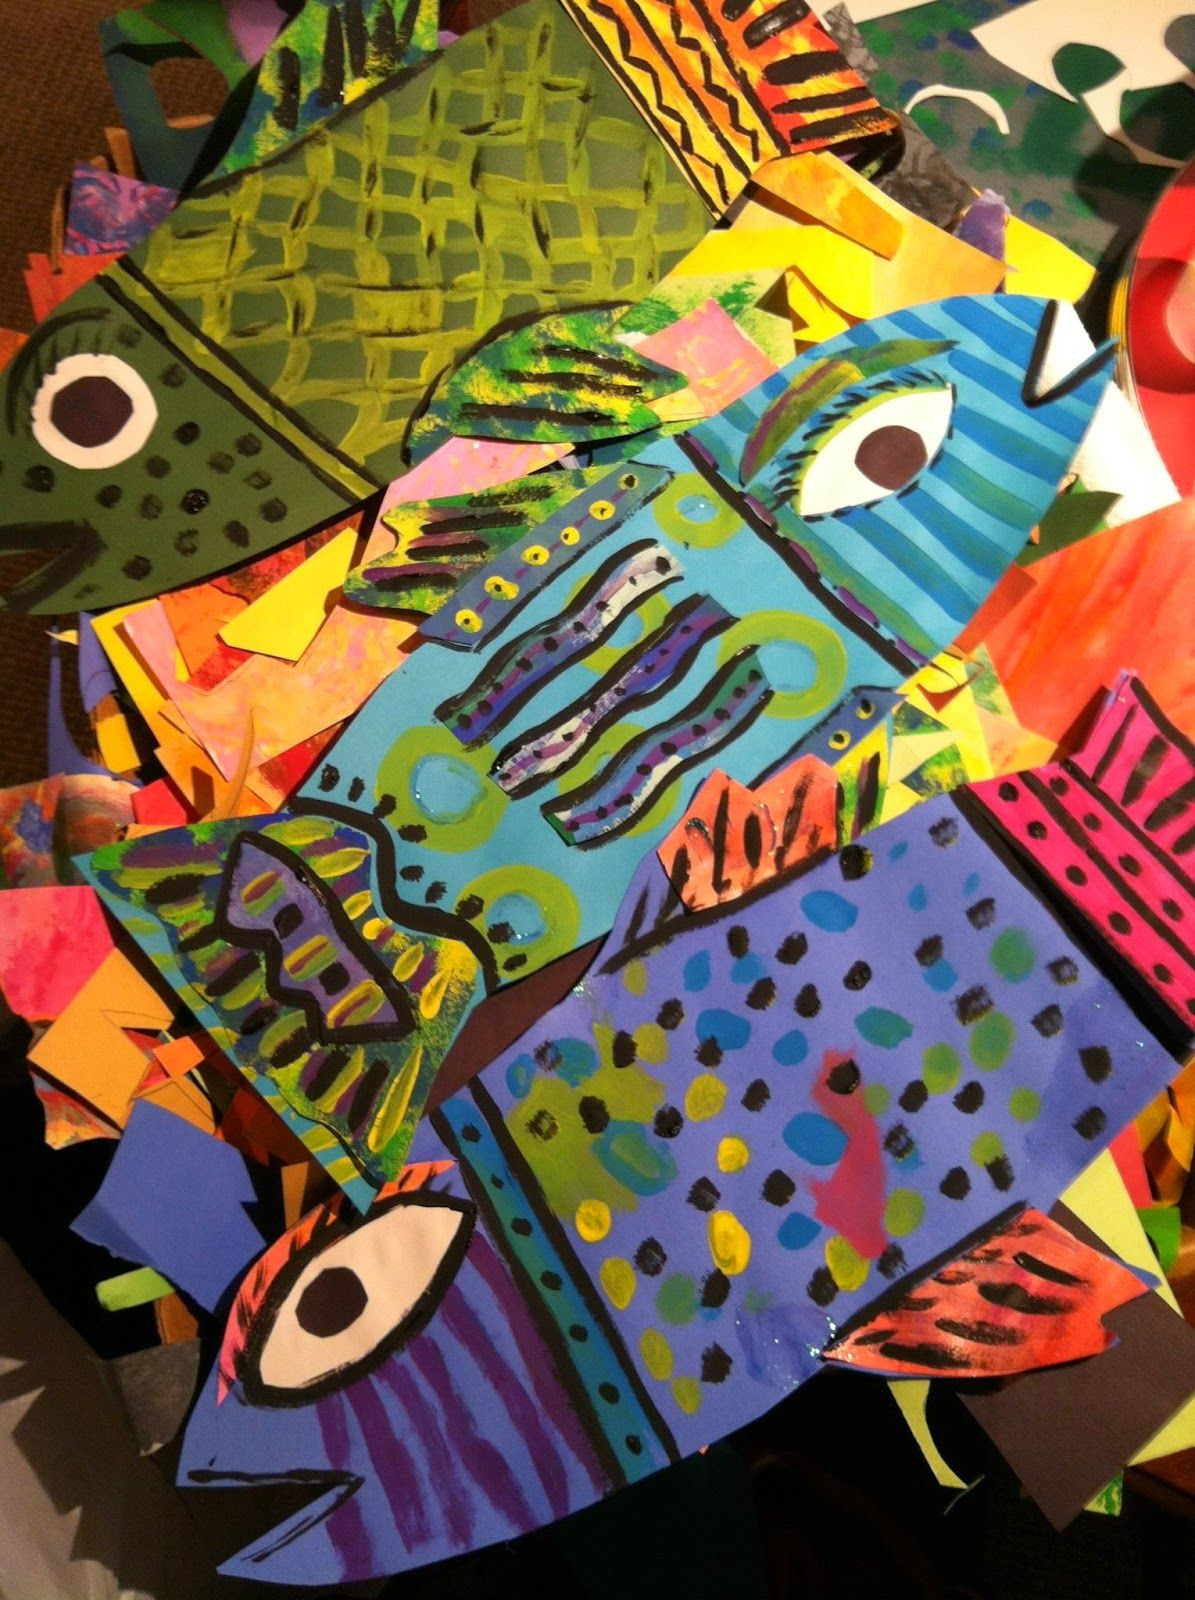 Painted Paper Getting Ready For A New School Year